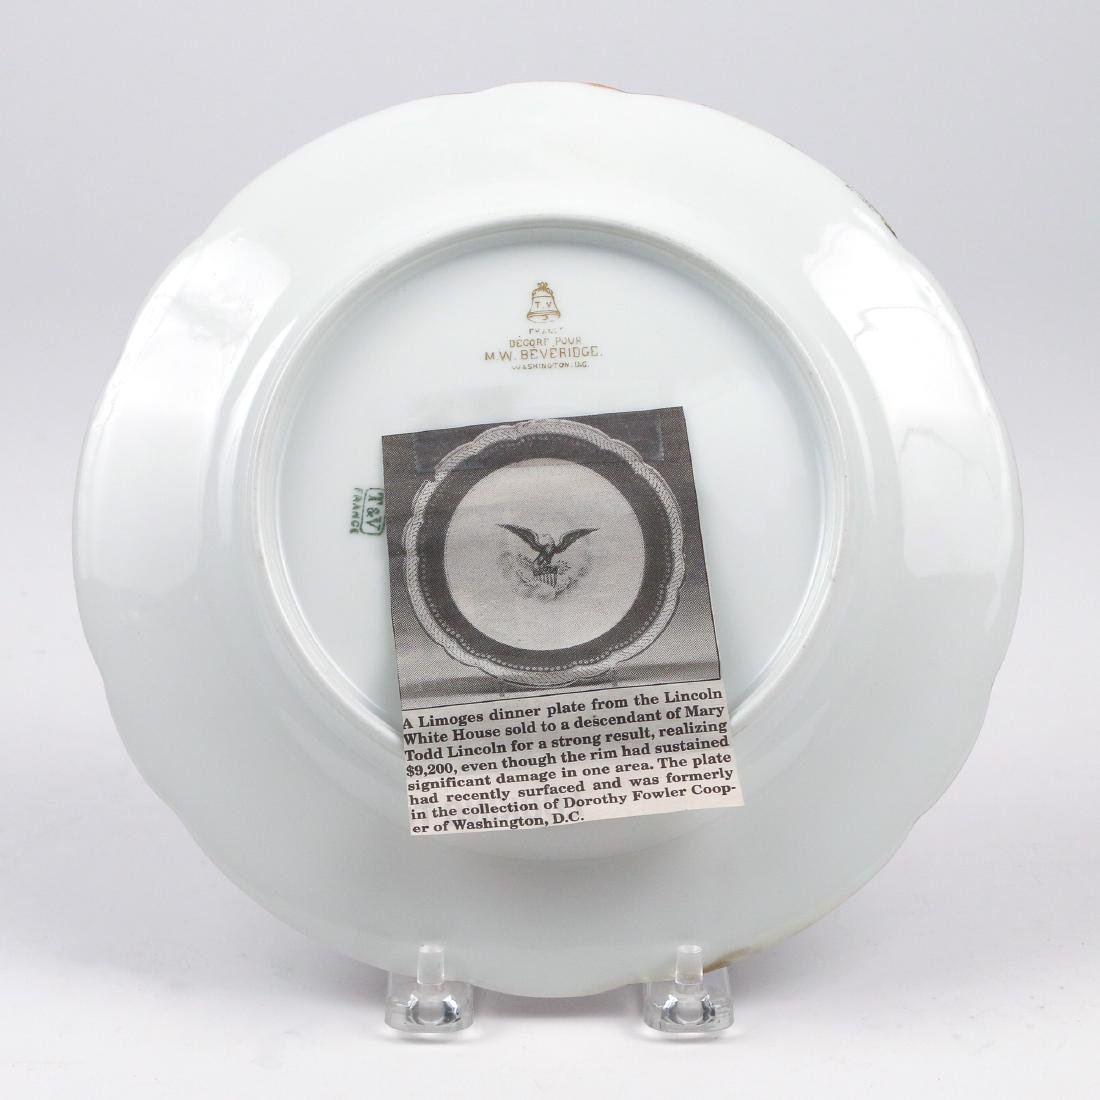 BENJAMIN HARRISON WHITE HOUSE CHINA DISH - 3